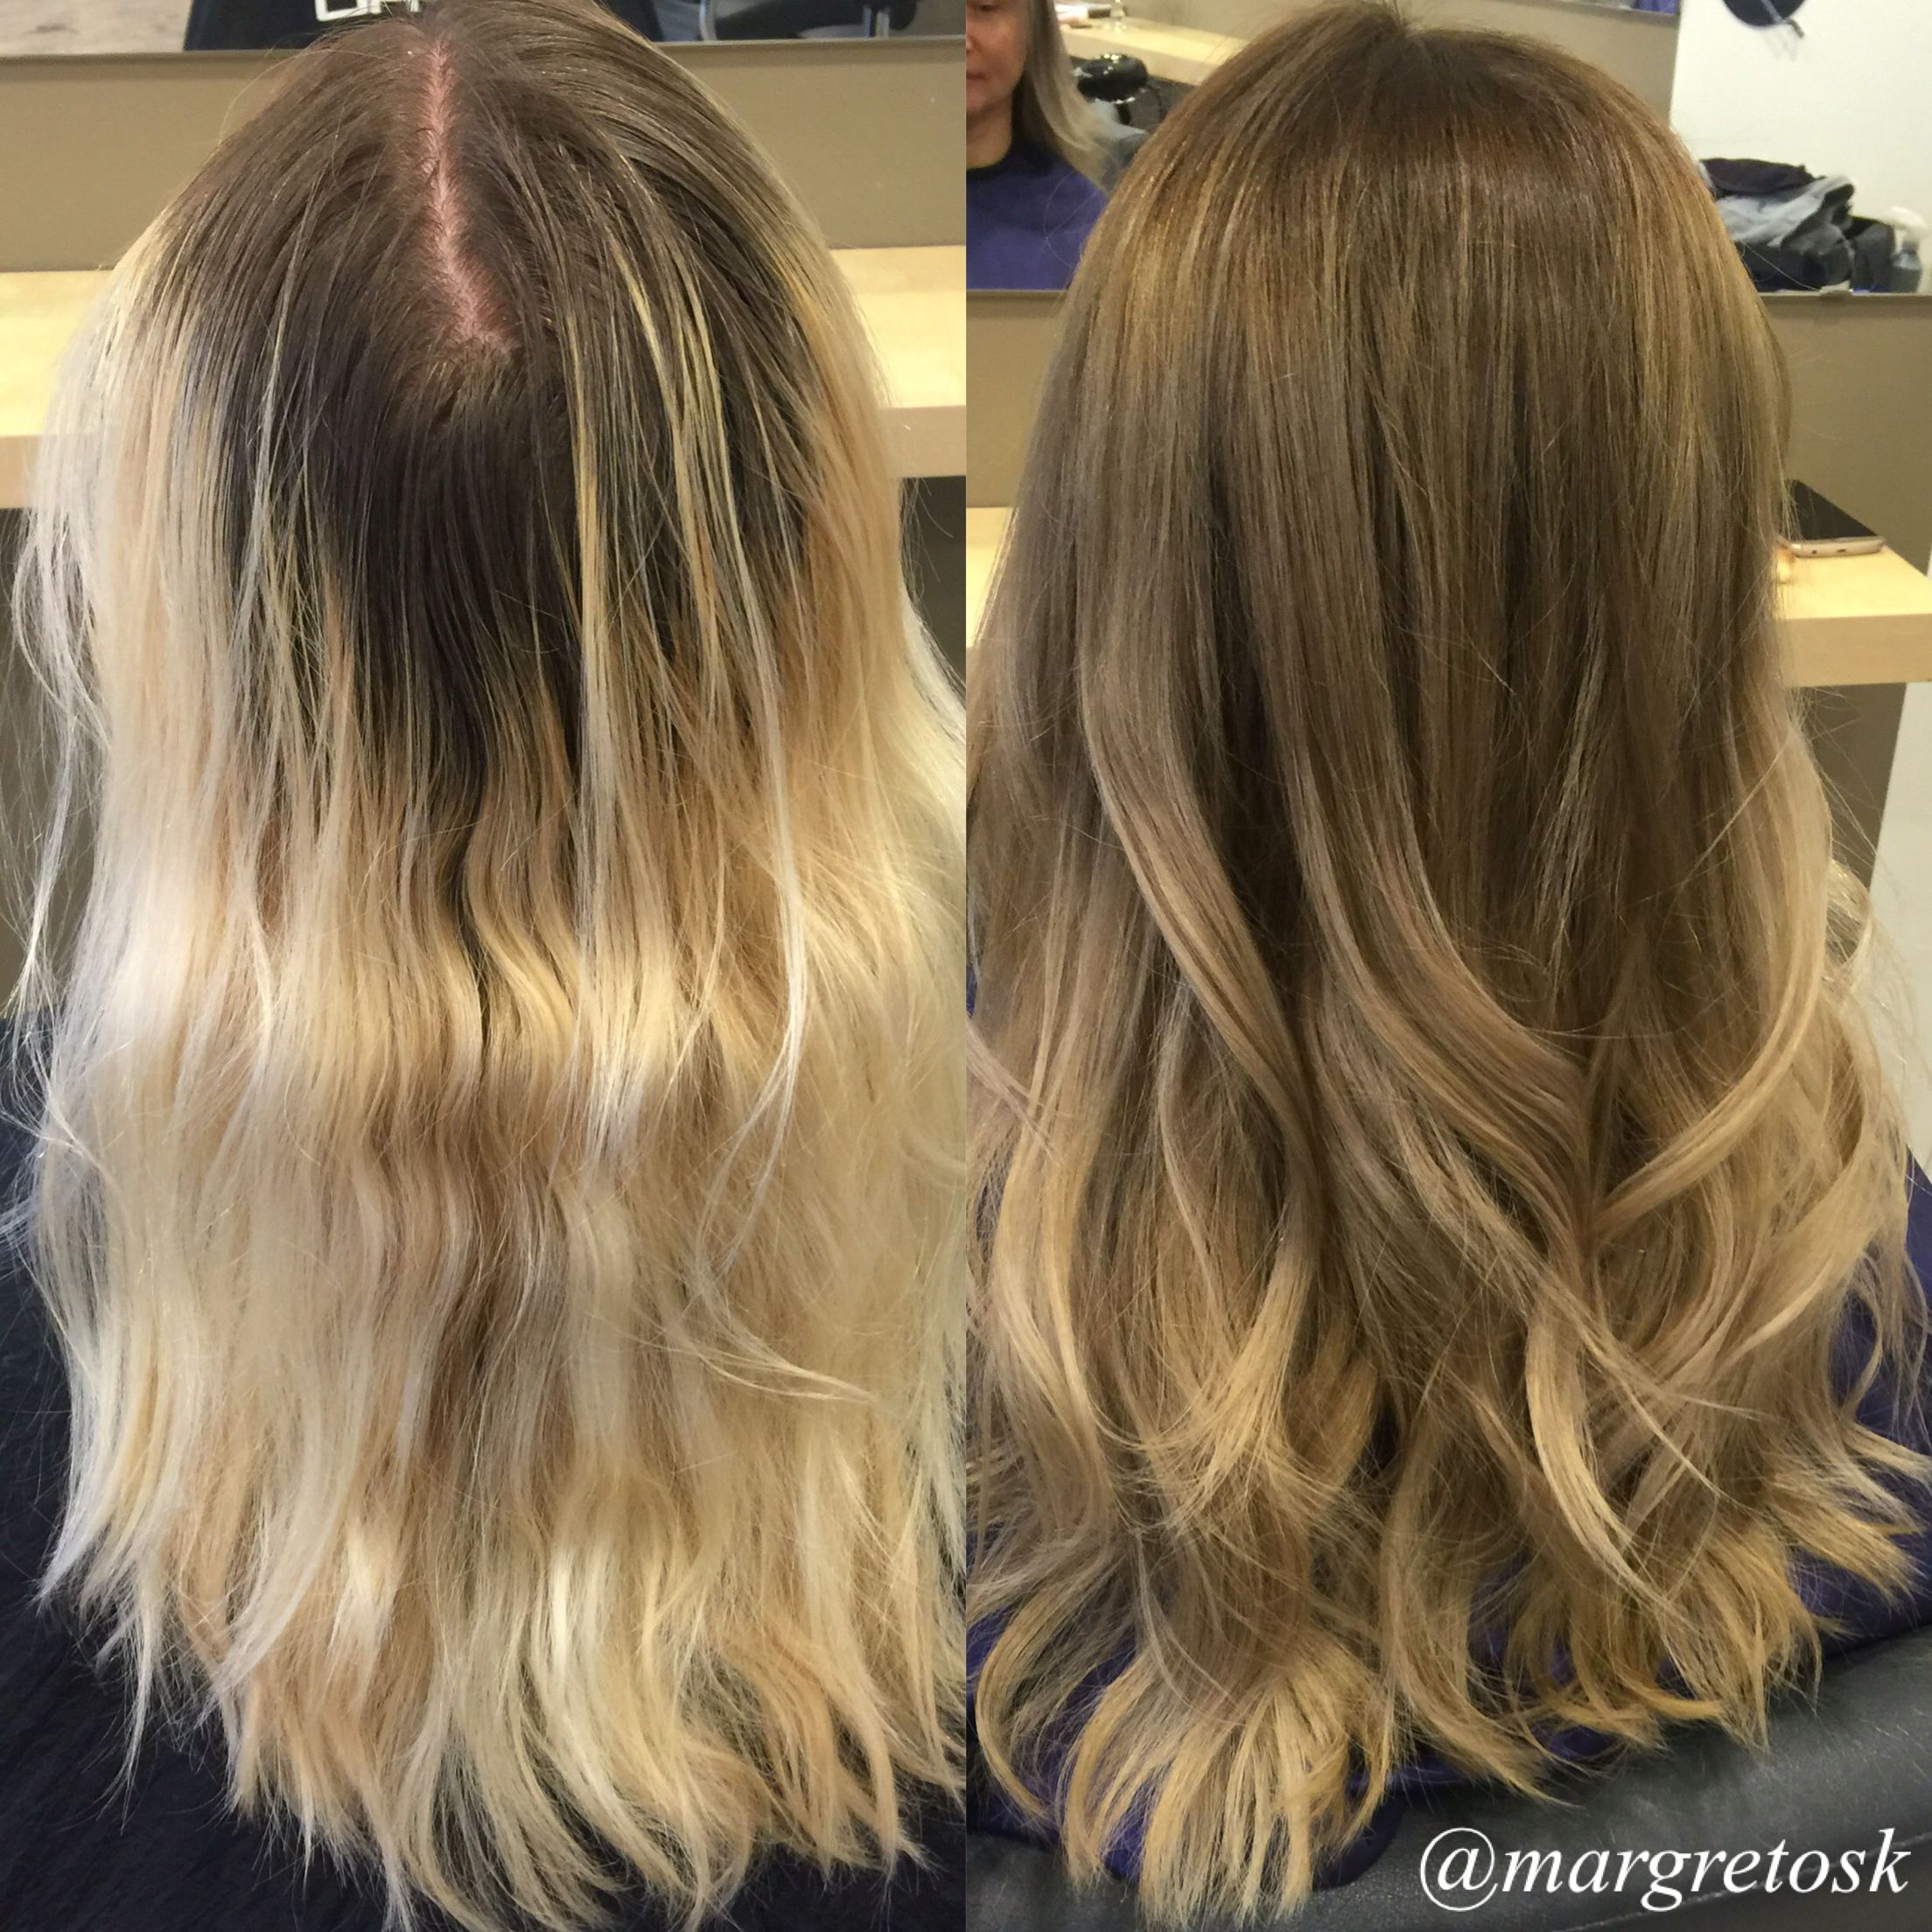 Before And After Coloring From Really Blonde Ends With Really